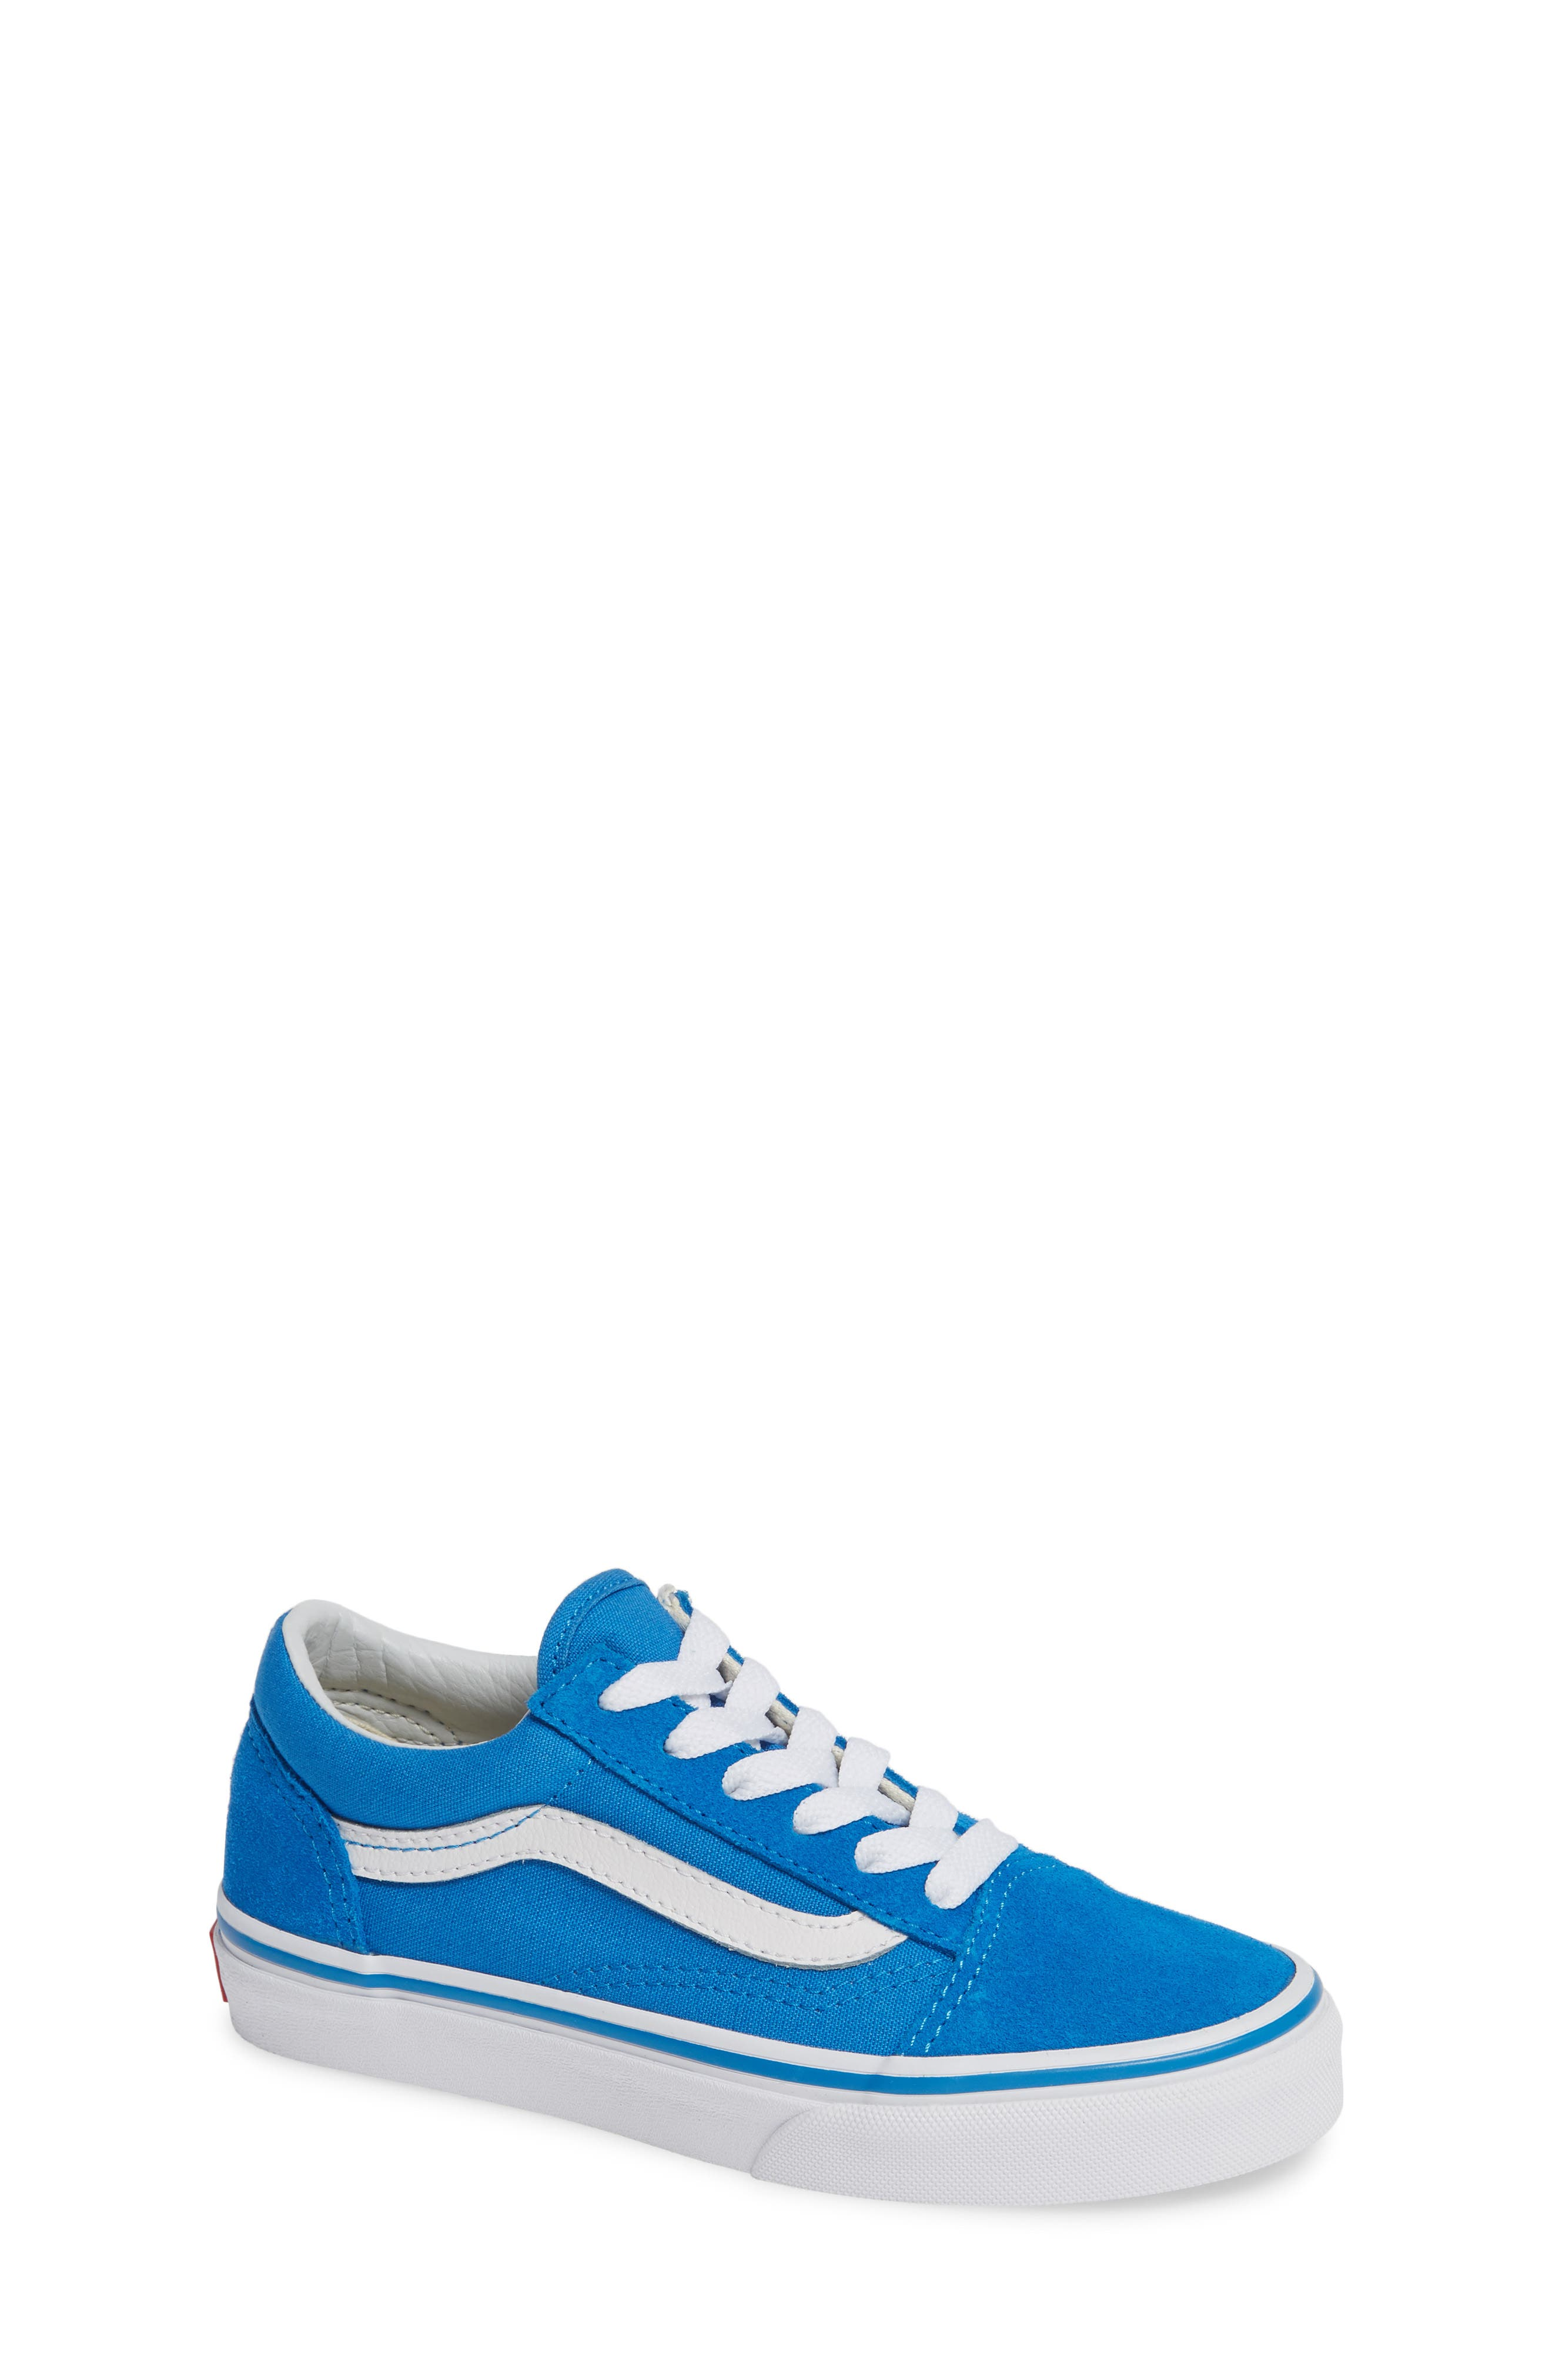 Old Skool Sneaker,                             Main thumbnail 1, color,                             INDIGO BUNTING/ TRUE WHITE